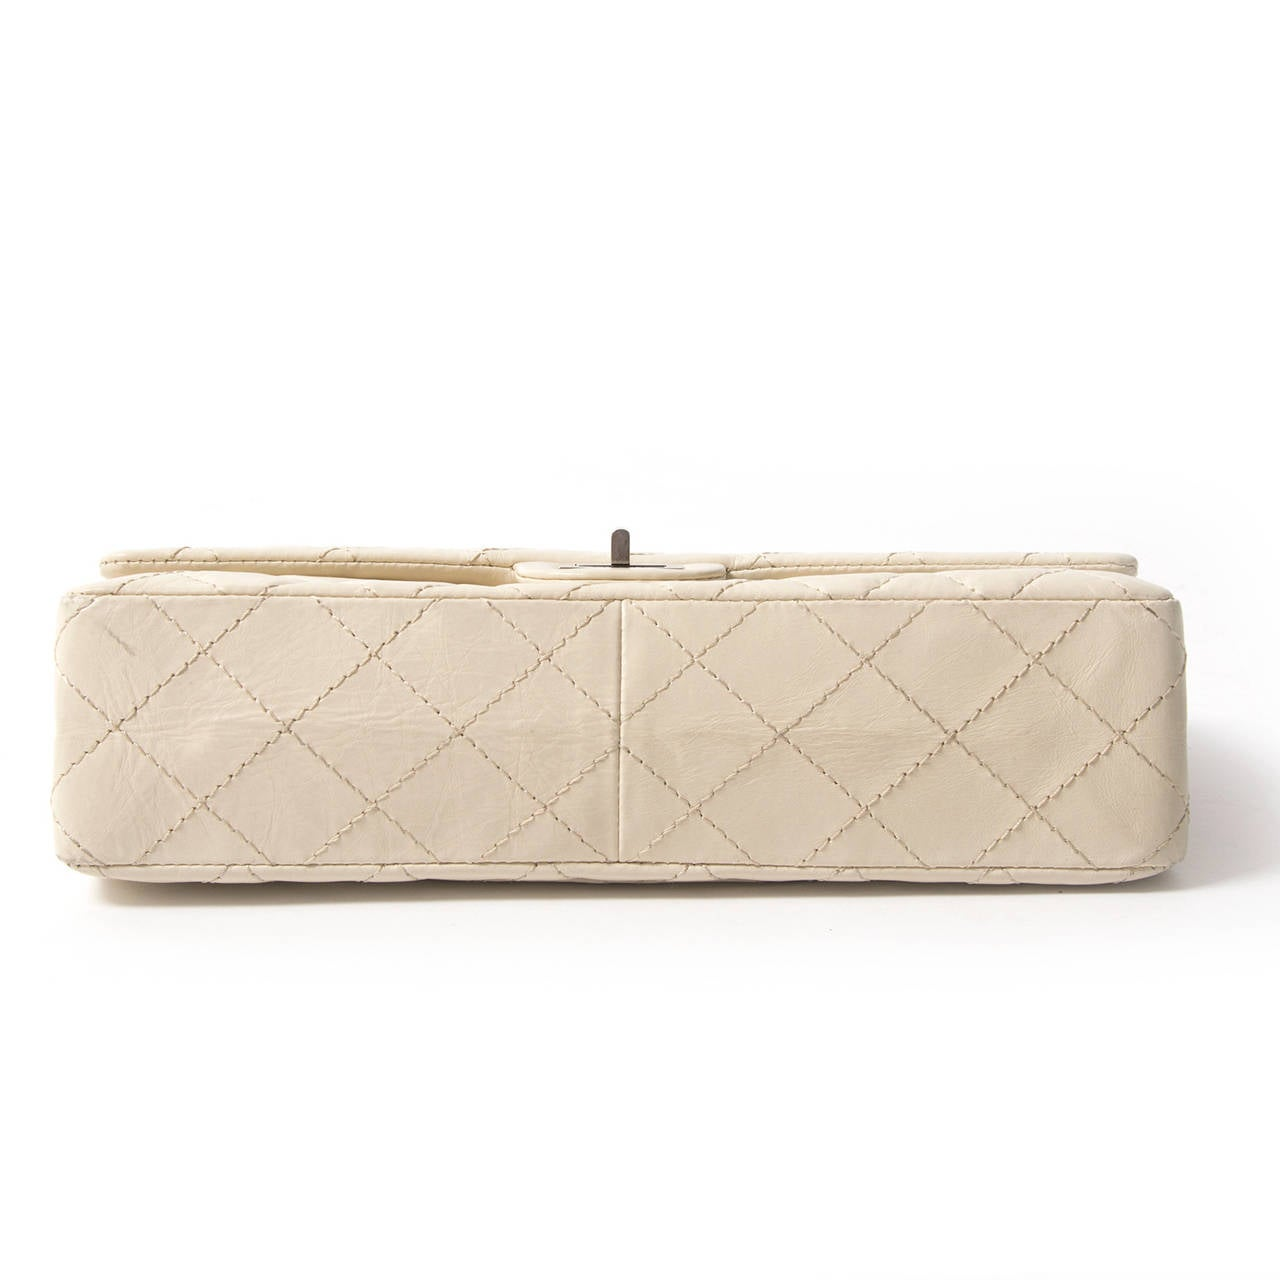 Chanel Snow White 2.55 Medium Reissue  The Chanel 2.55 Flap Bag is one of the most coveted bags of all time.  In the 1920s, Coco Chanel has designed the classic flap bag to make her hands move freely during social events. As she made her return